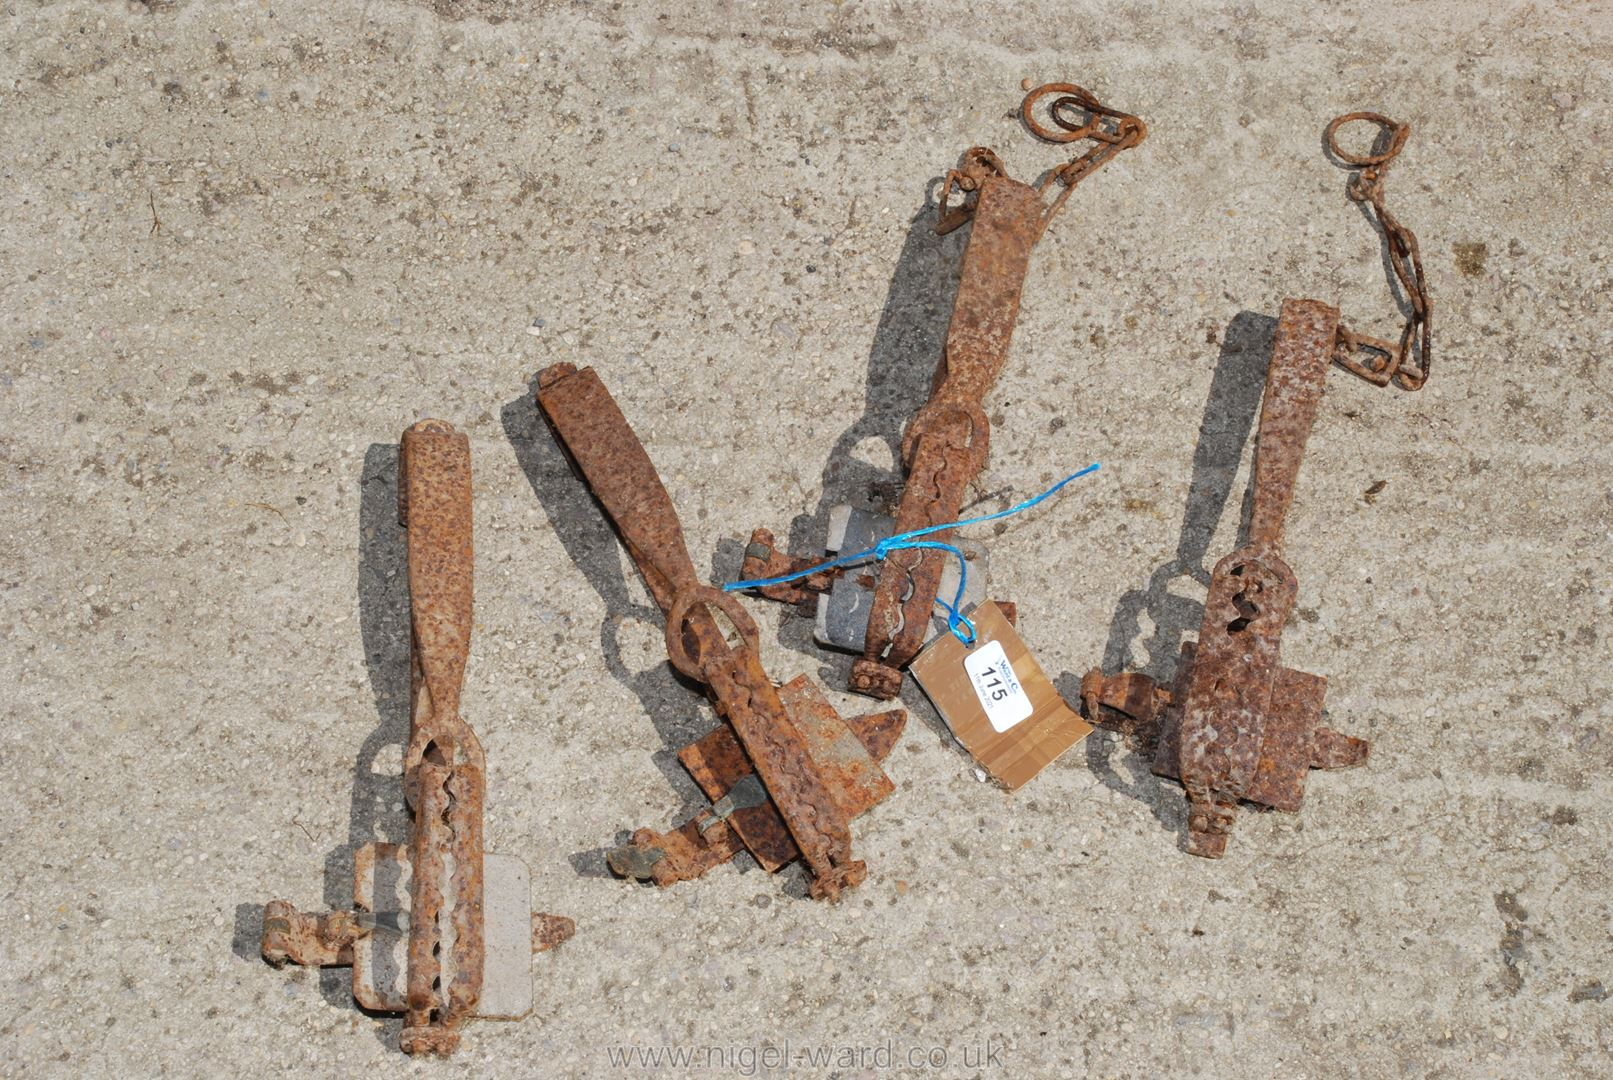 Four animal traps (for display purposes).